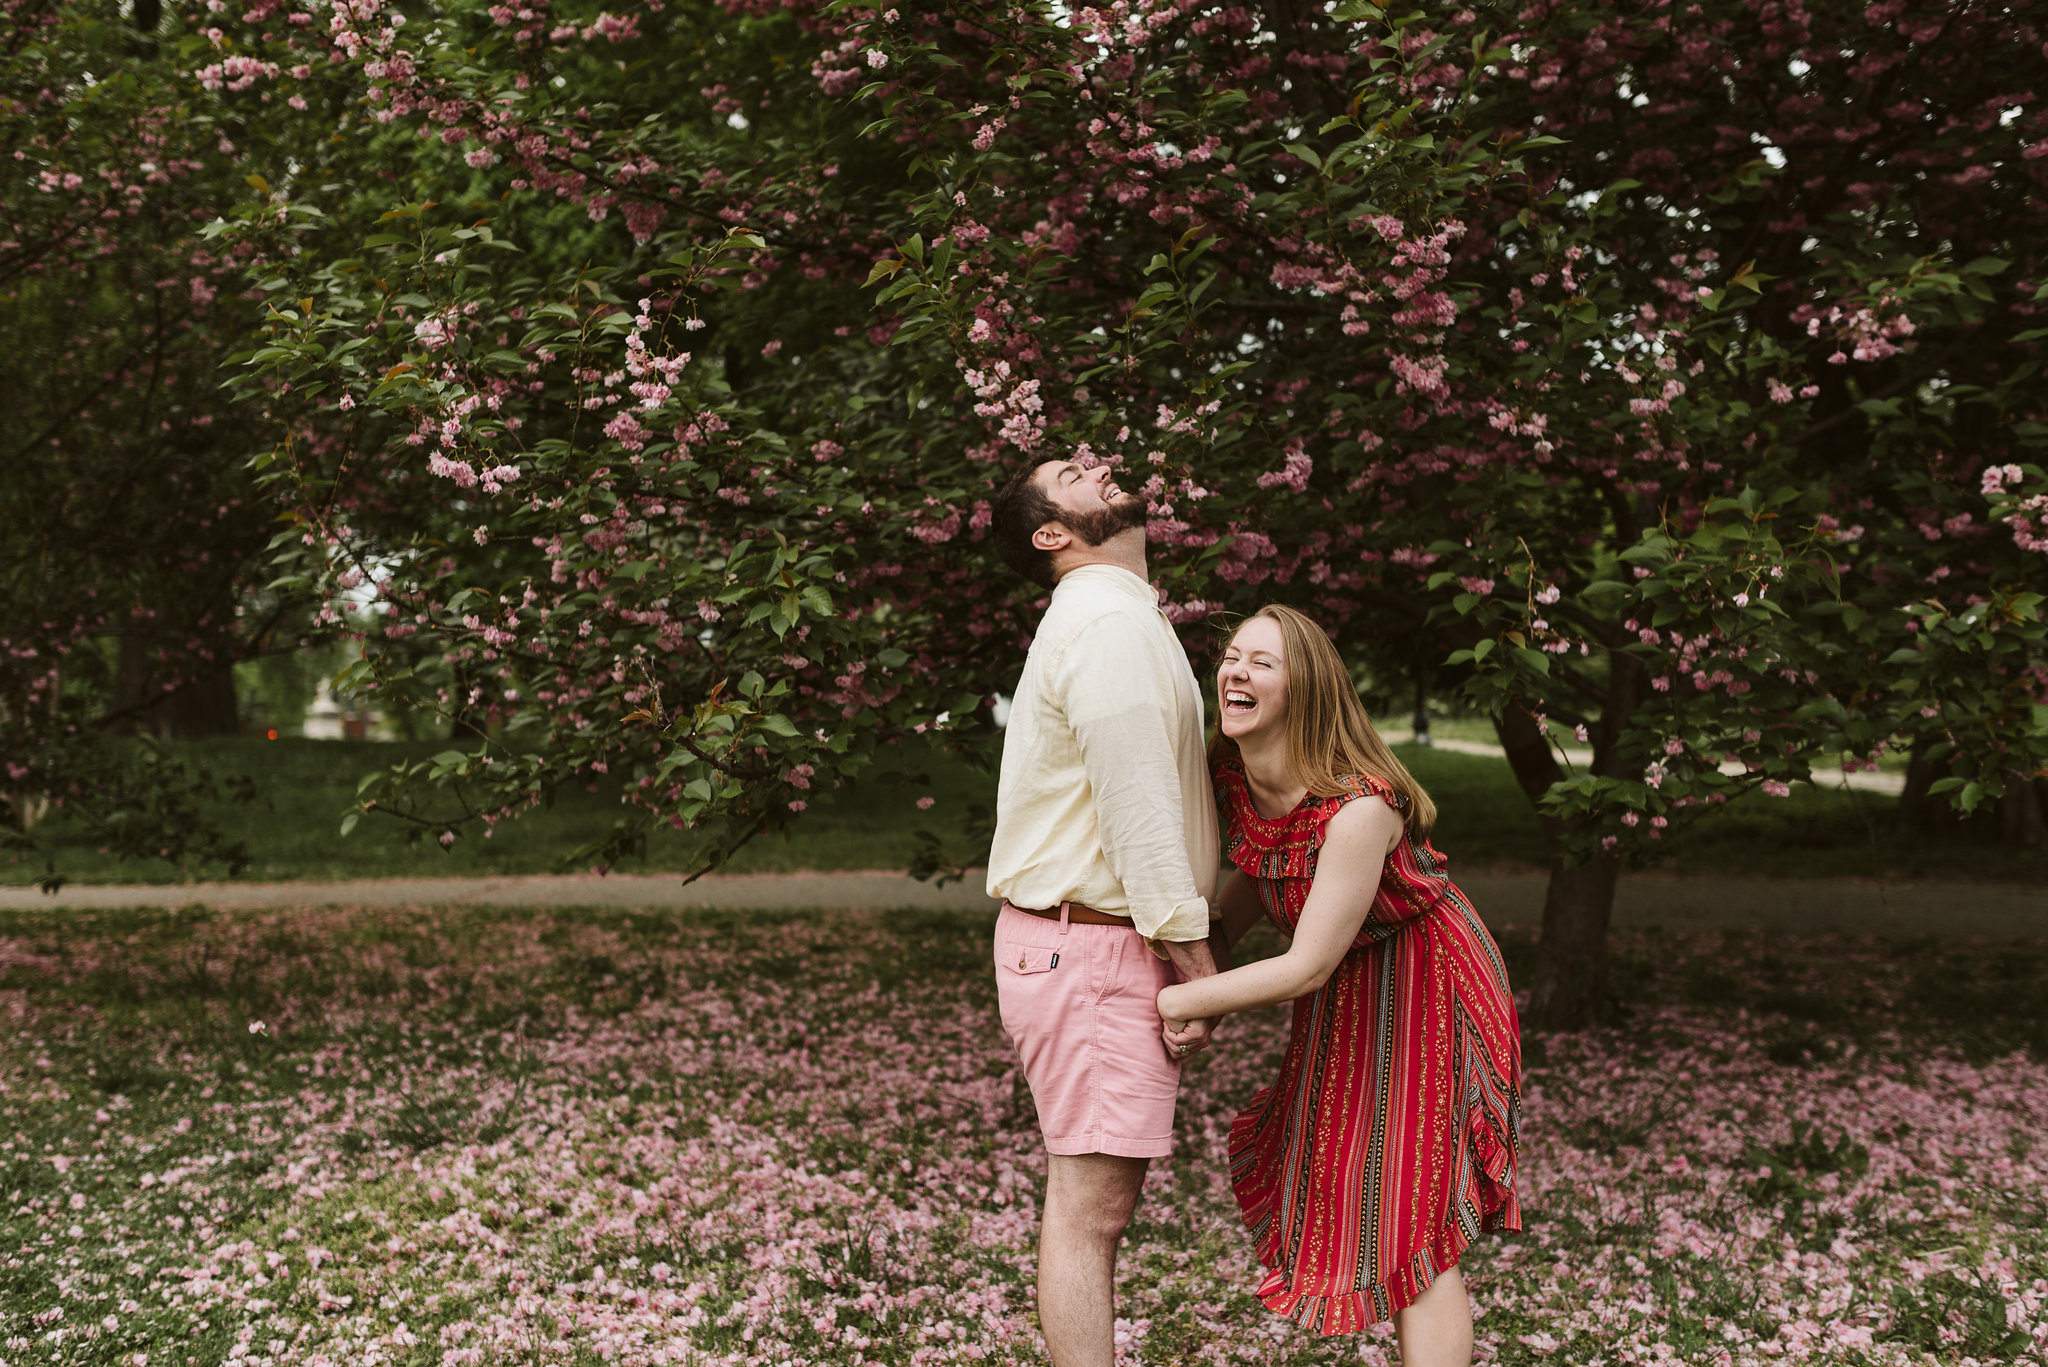 Engagement Photos, Patterson Park, Baltimore, Maryland Wedding Photographer, Casual, Fun, Nature, Bride and Groom Laughing Under a Tree, Crape Myrtle